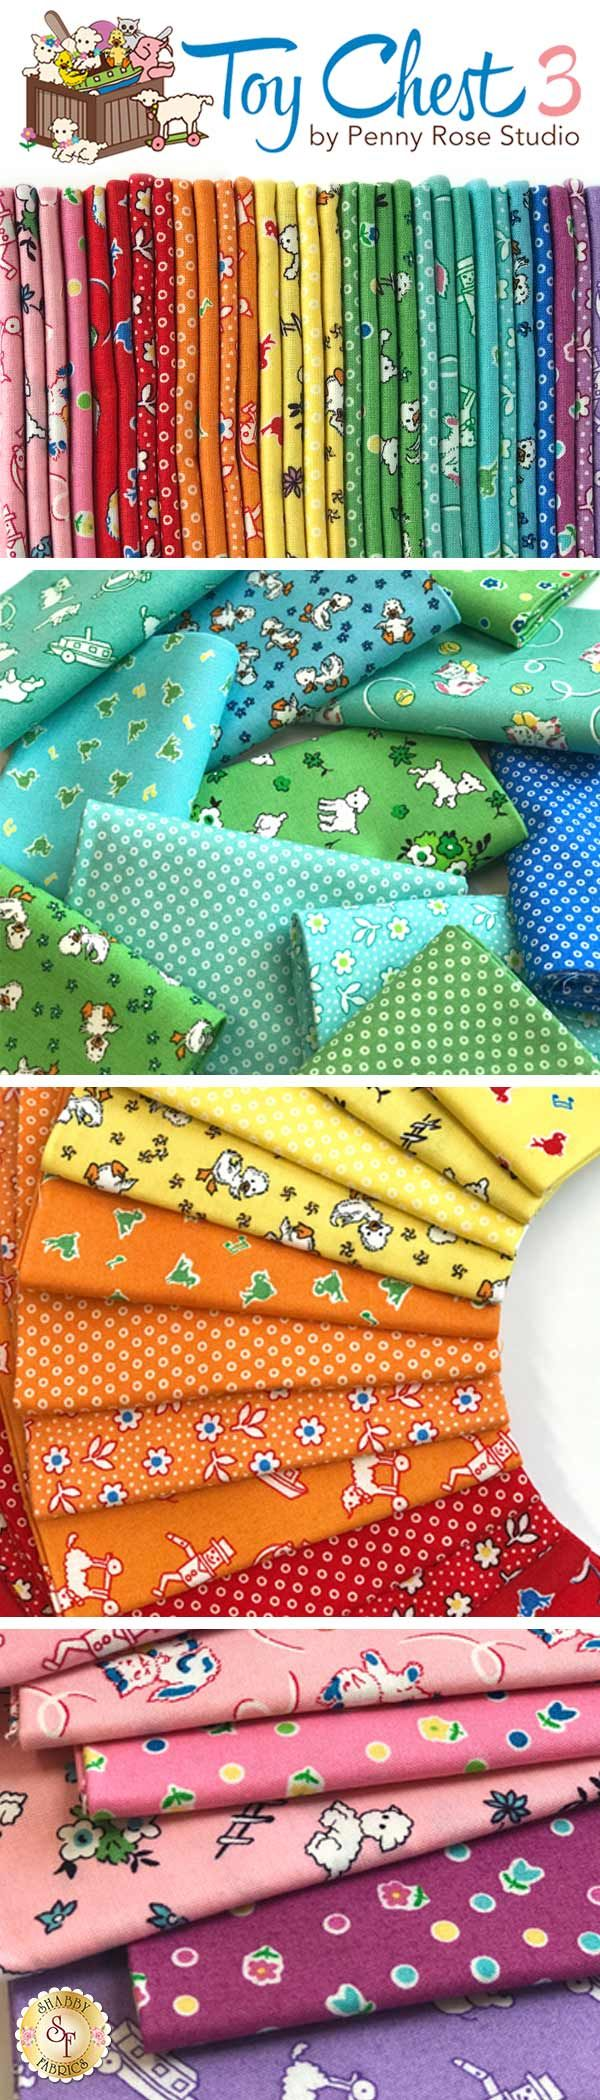 Toy Chest 3 by Penny Rose Fabrics is a whimsical children's collection available at Shabby Fabrics.